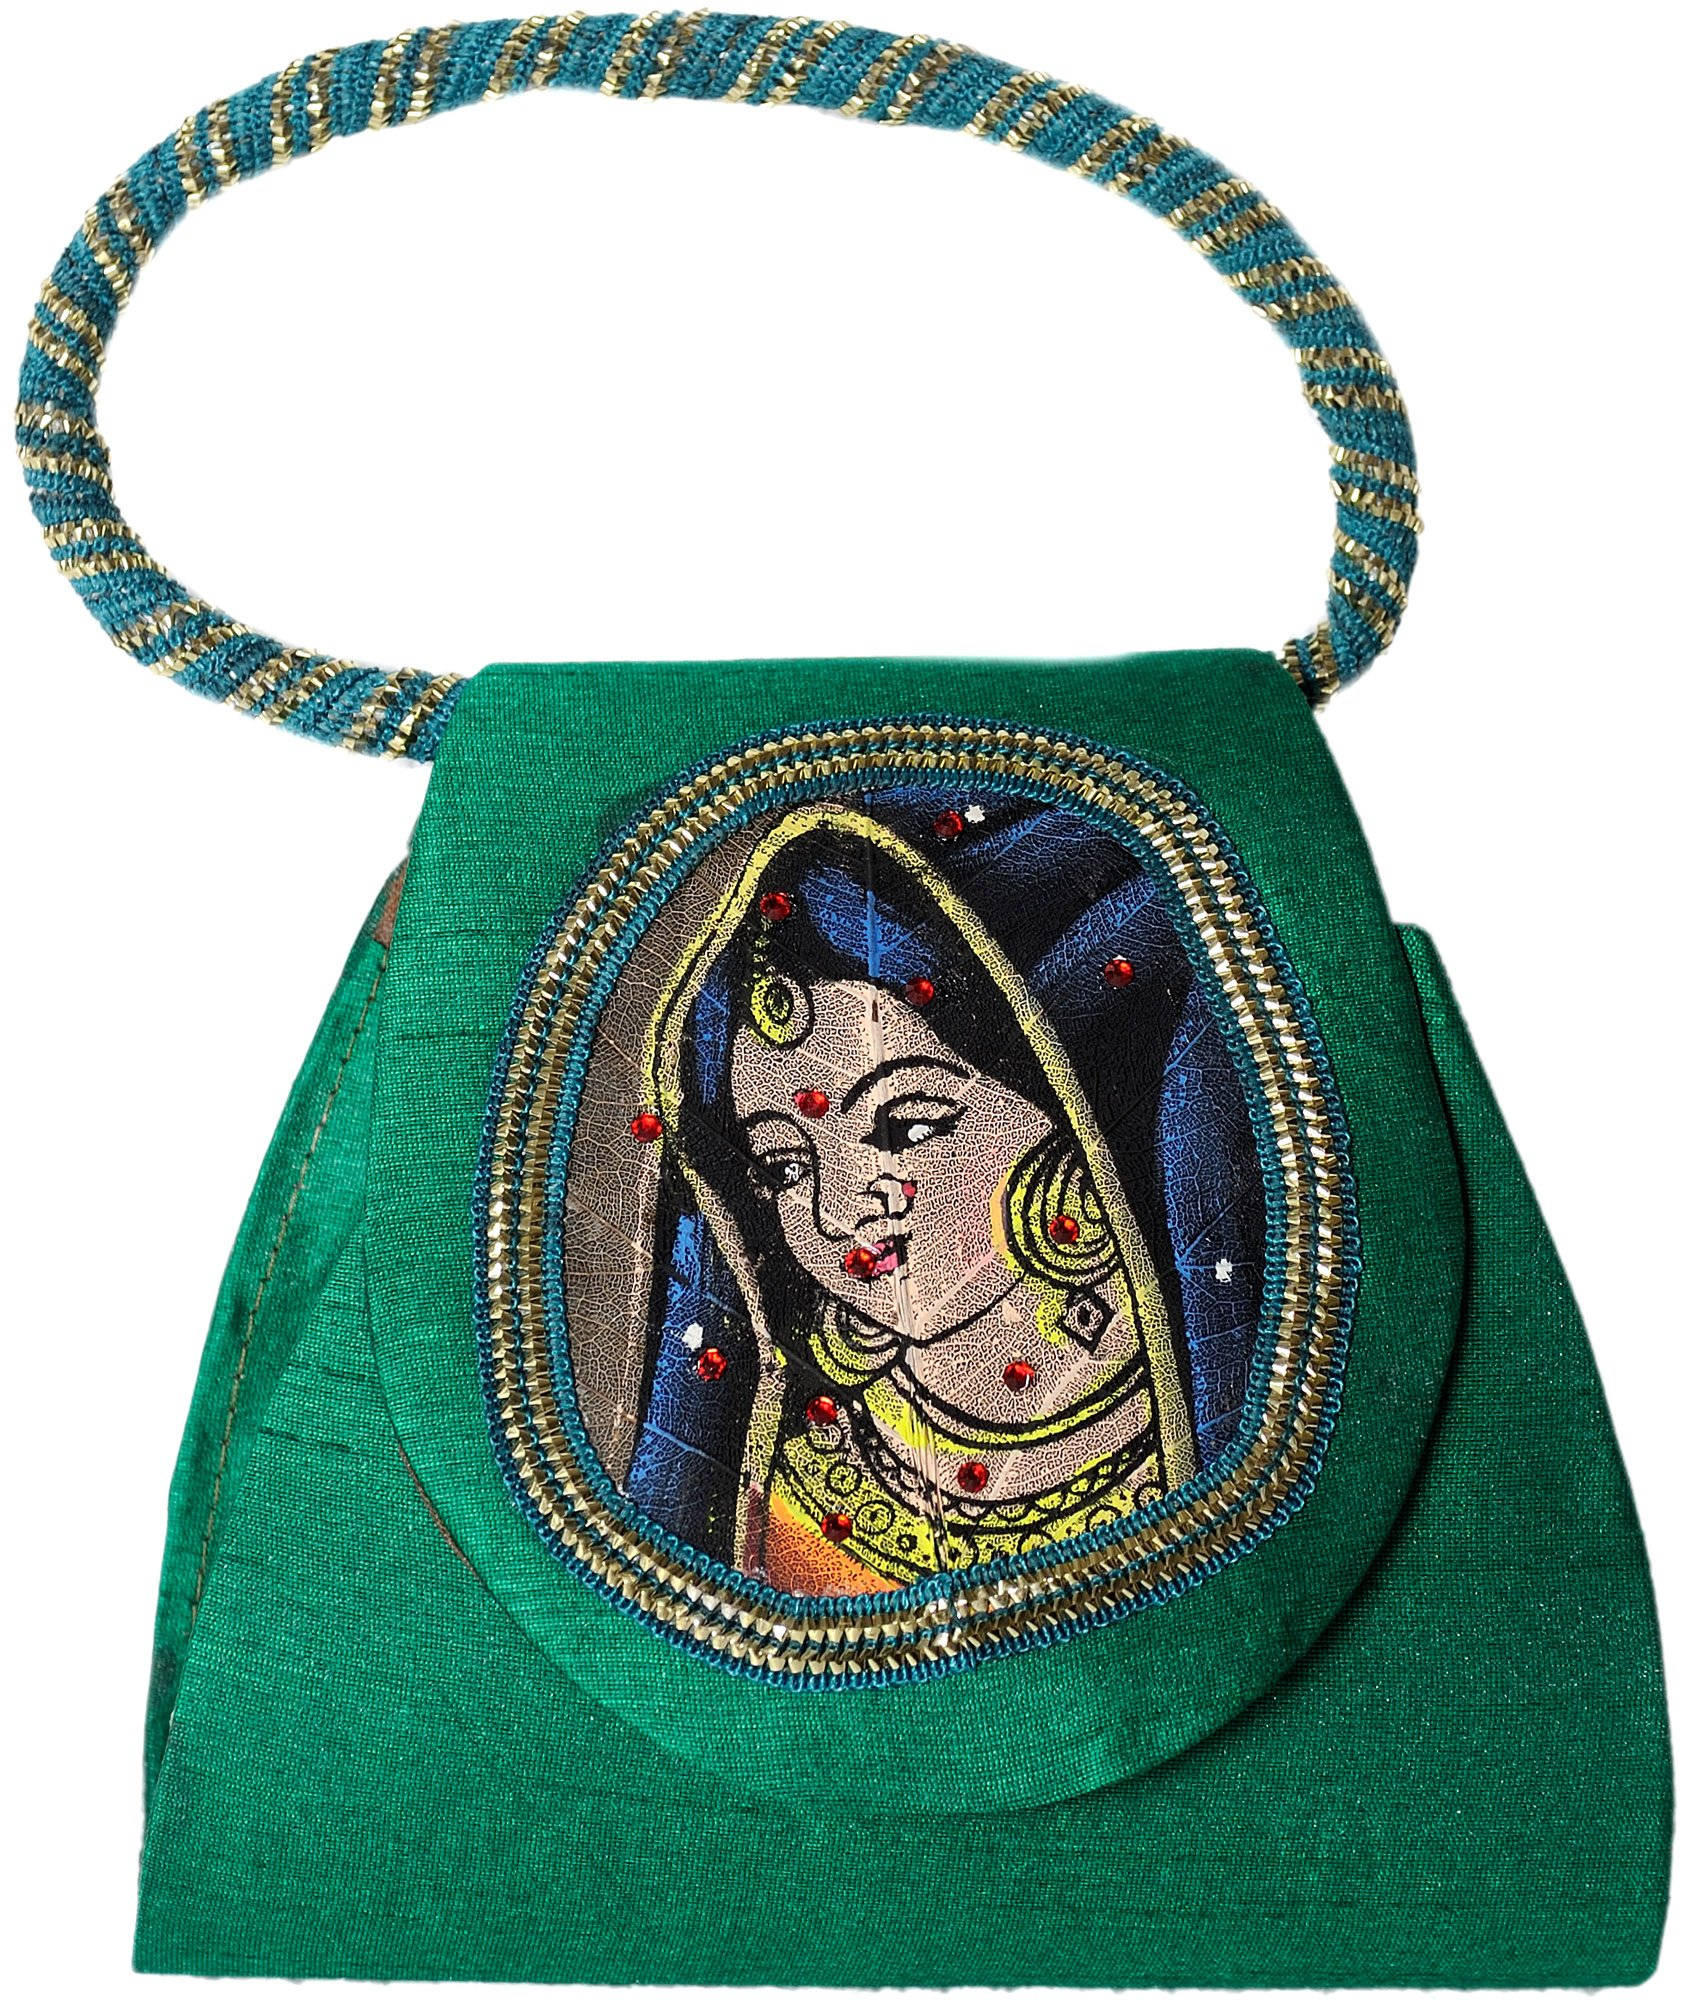 Exotic India Bracelet Bag with Beadwork and Painted Lady Figure on Fig Leaf - Color GreenColor One Size fits most